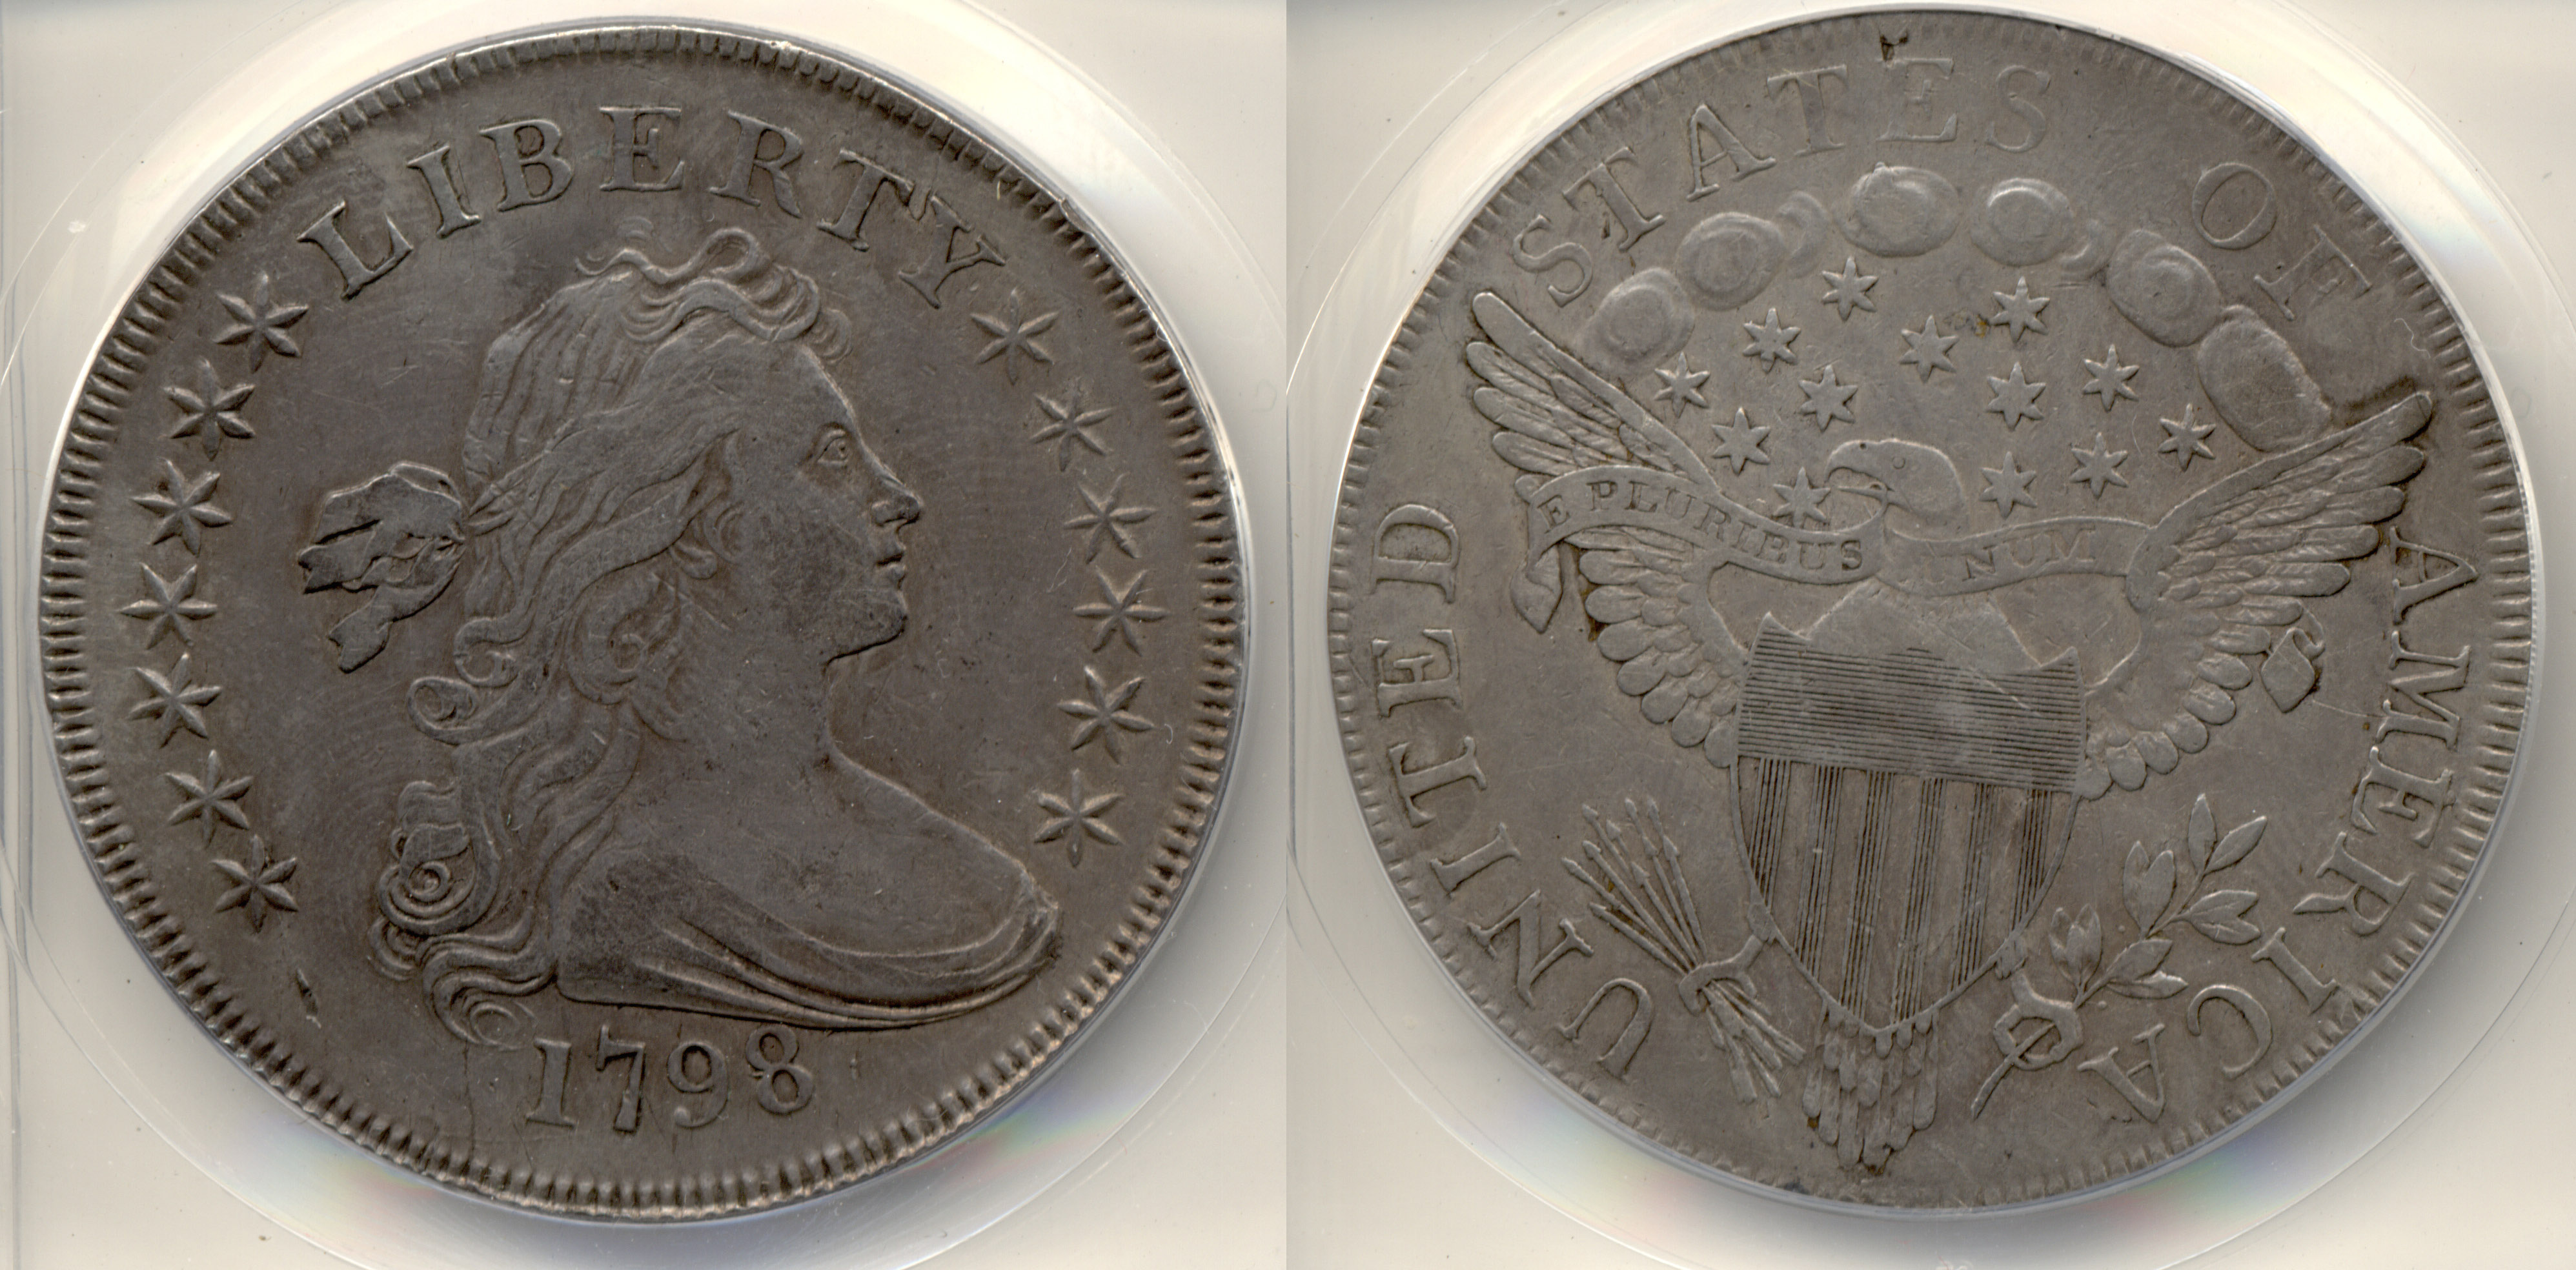 1798 Draped Bust Large Eagle Silver Dollar ANACS EF-40